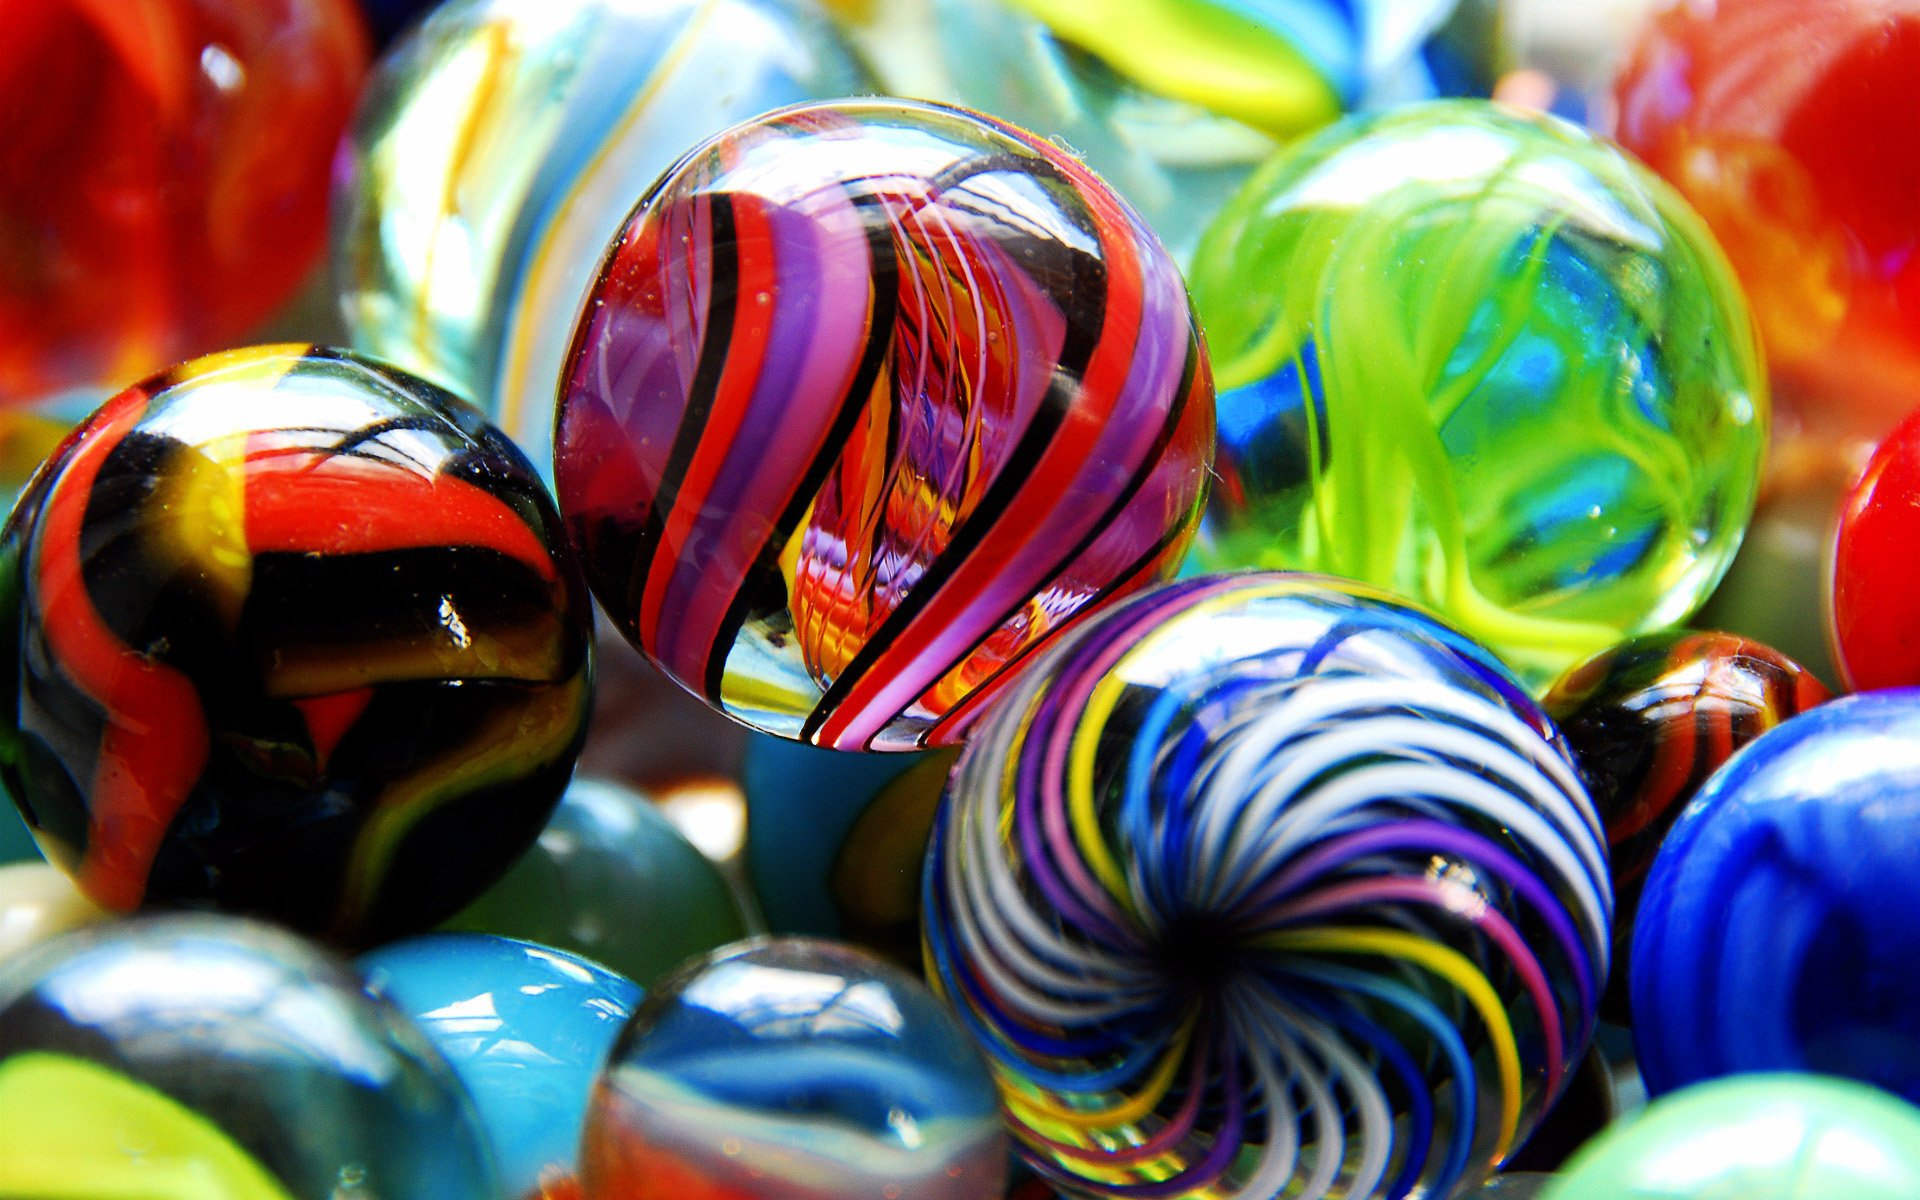 colored glass marbles wallpaper background